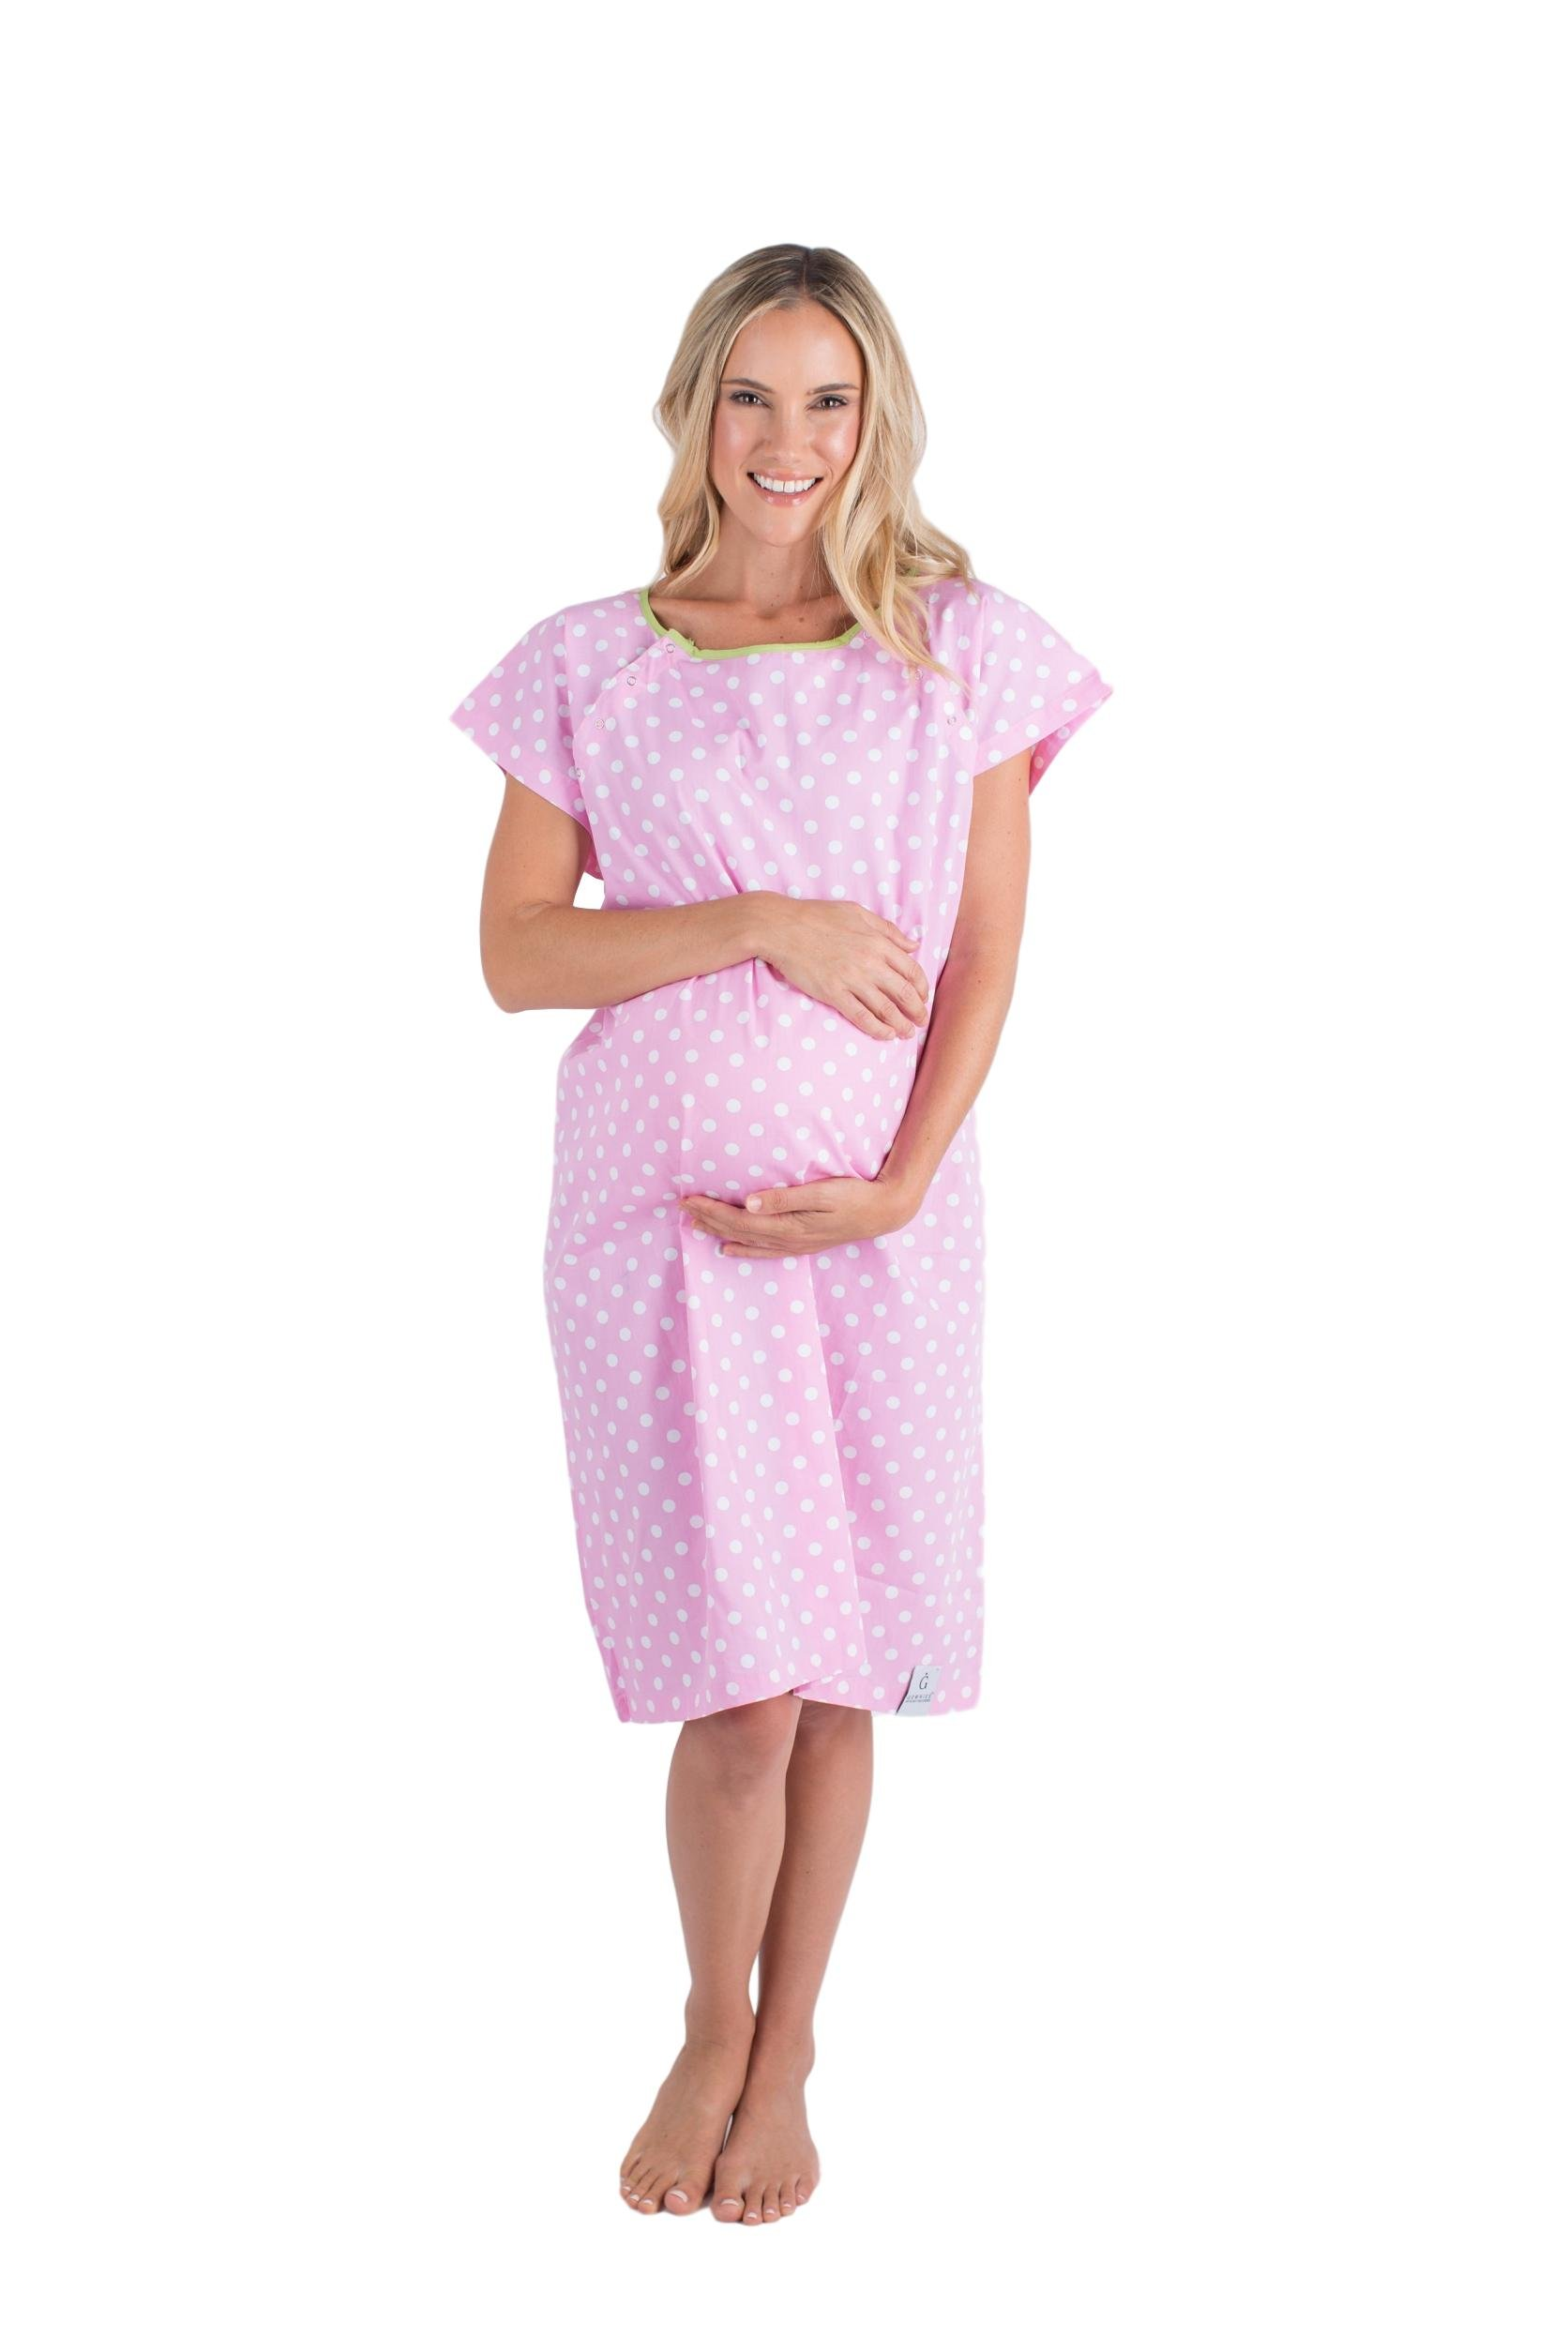 Gownies-Labor&Delivery Maternity Hospital Gown,Molly S/M pre pregnancy 0-10